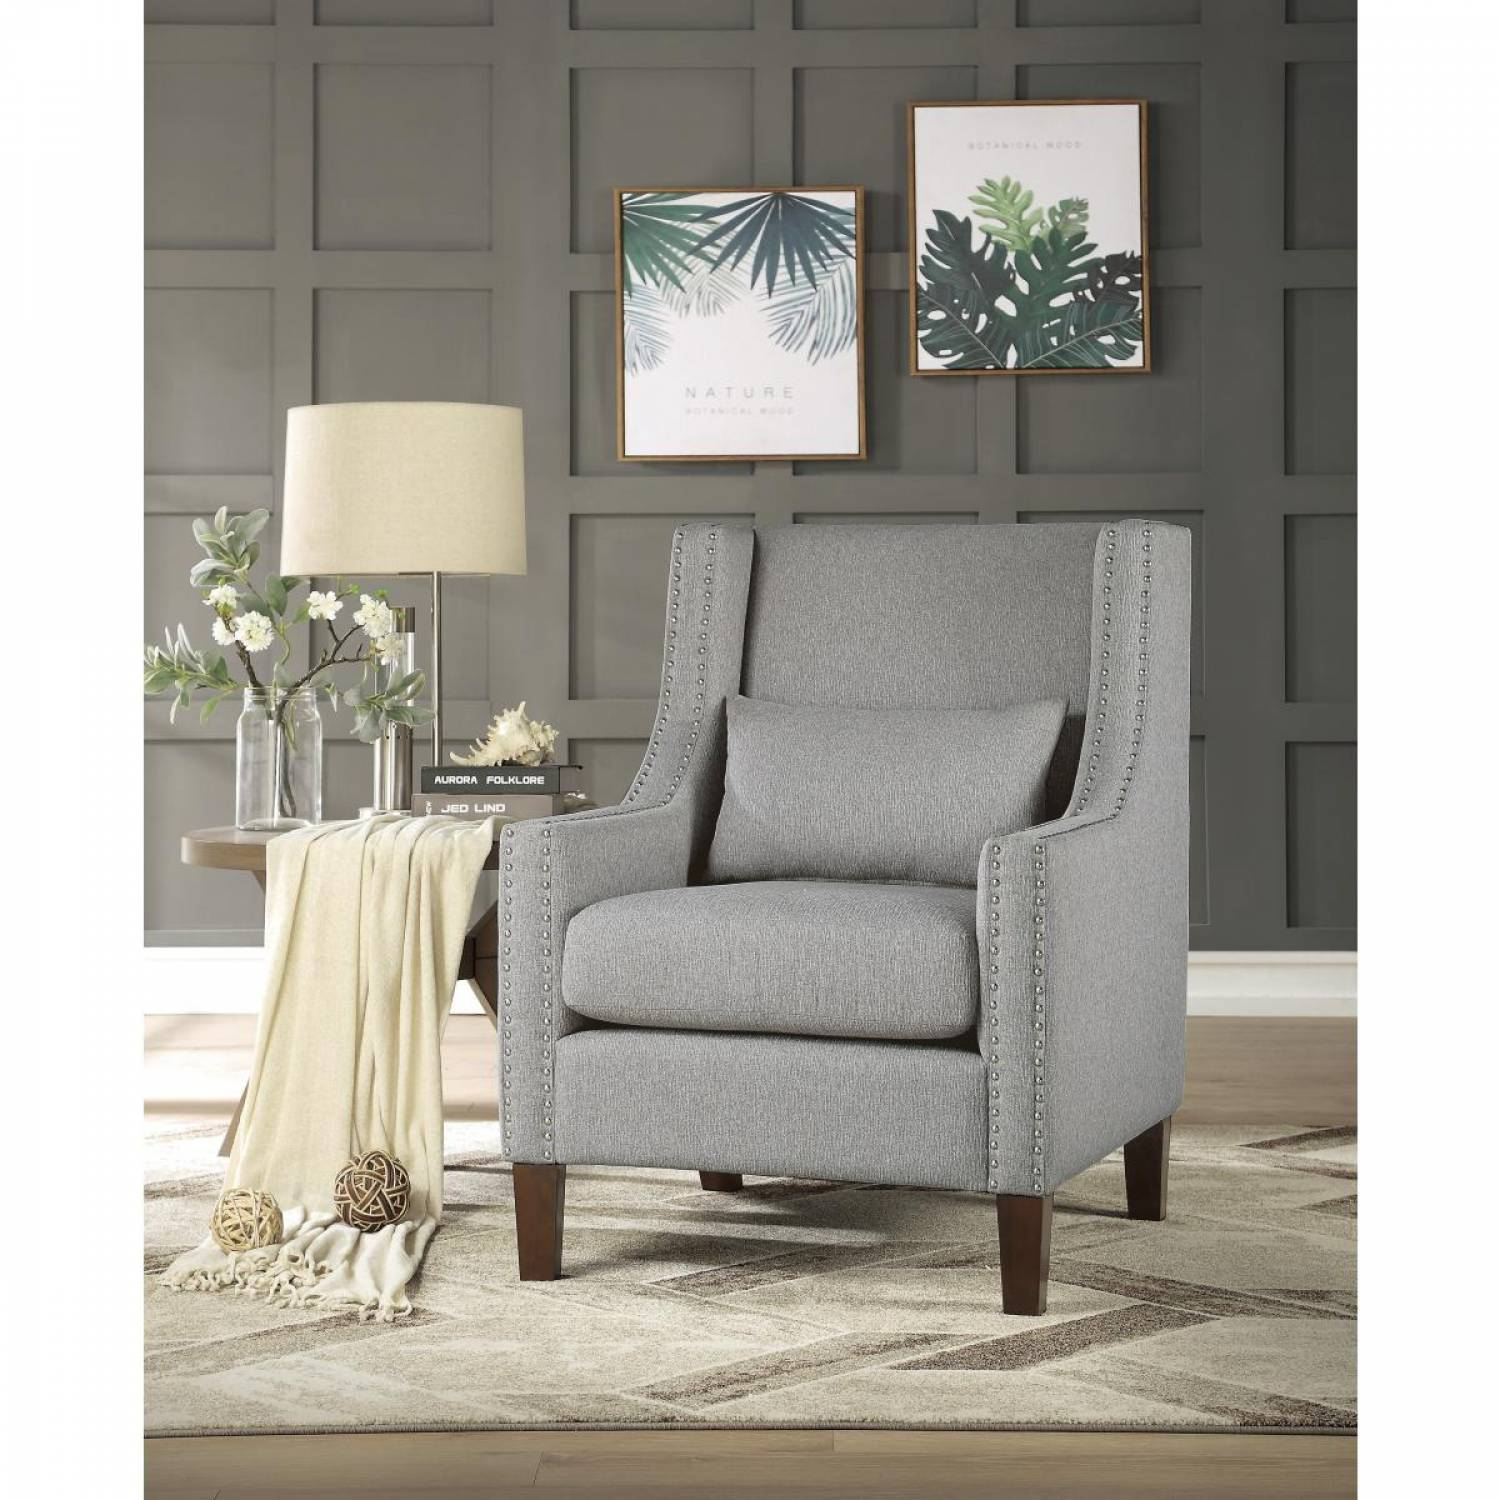 Pleasing 1114Gy 1 Accent Chair W Kidney Pillow Light Gray 100 Polyester Pdpeps Interior Chair Design Pdpepsorg